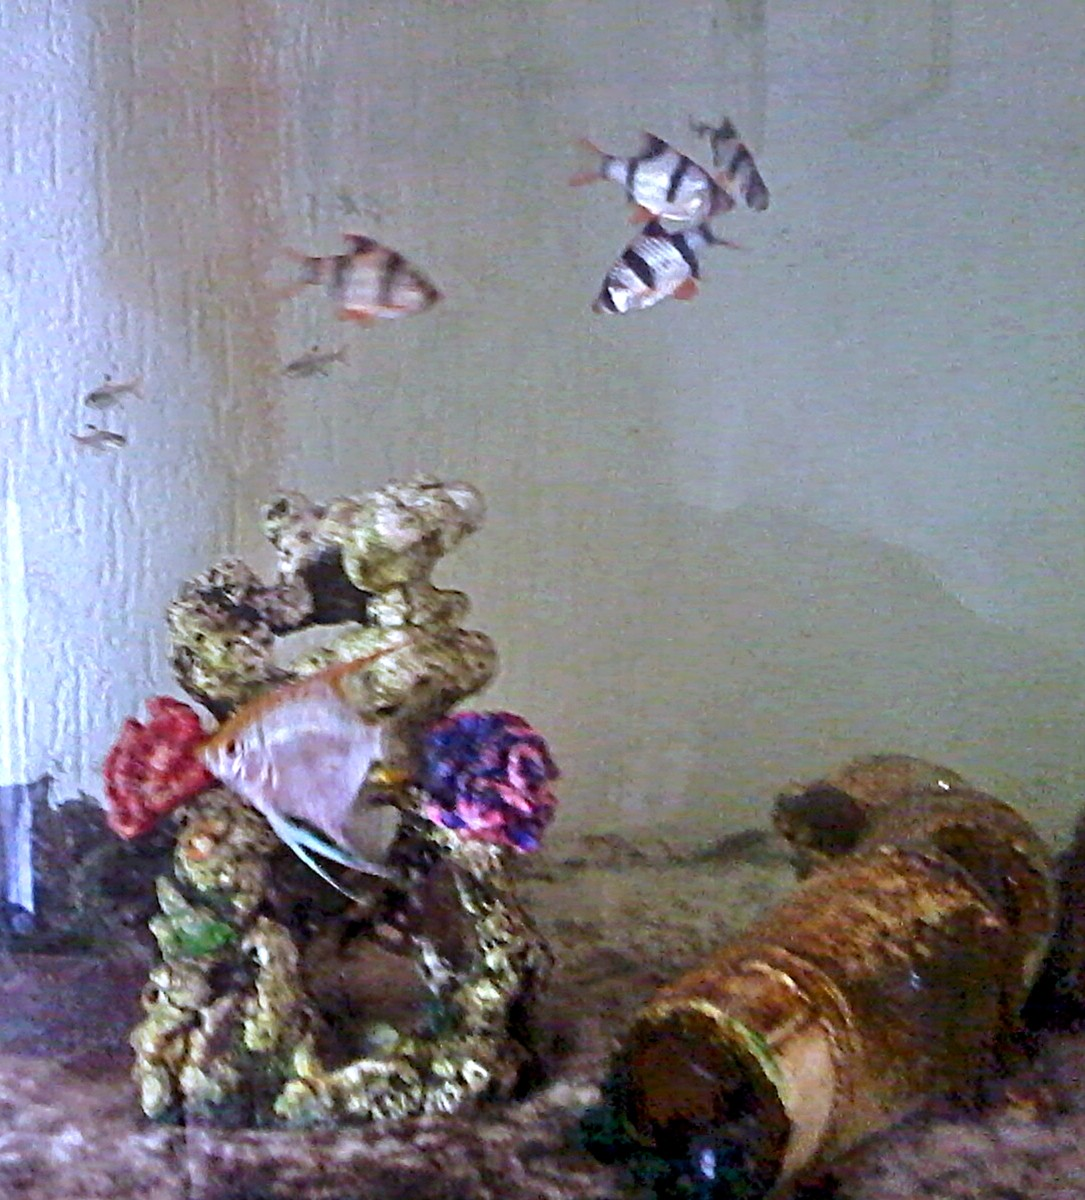 Some of my tropical fish today - my love of fish started as a child, when I won goldfish at the funfair.